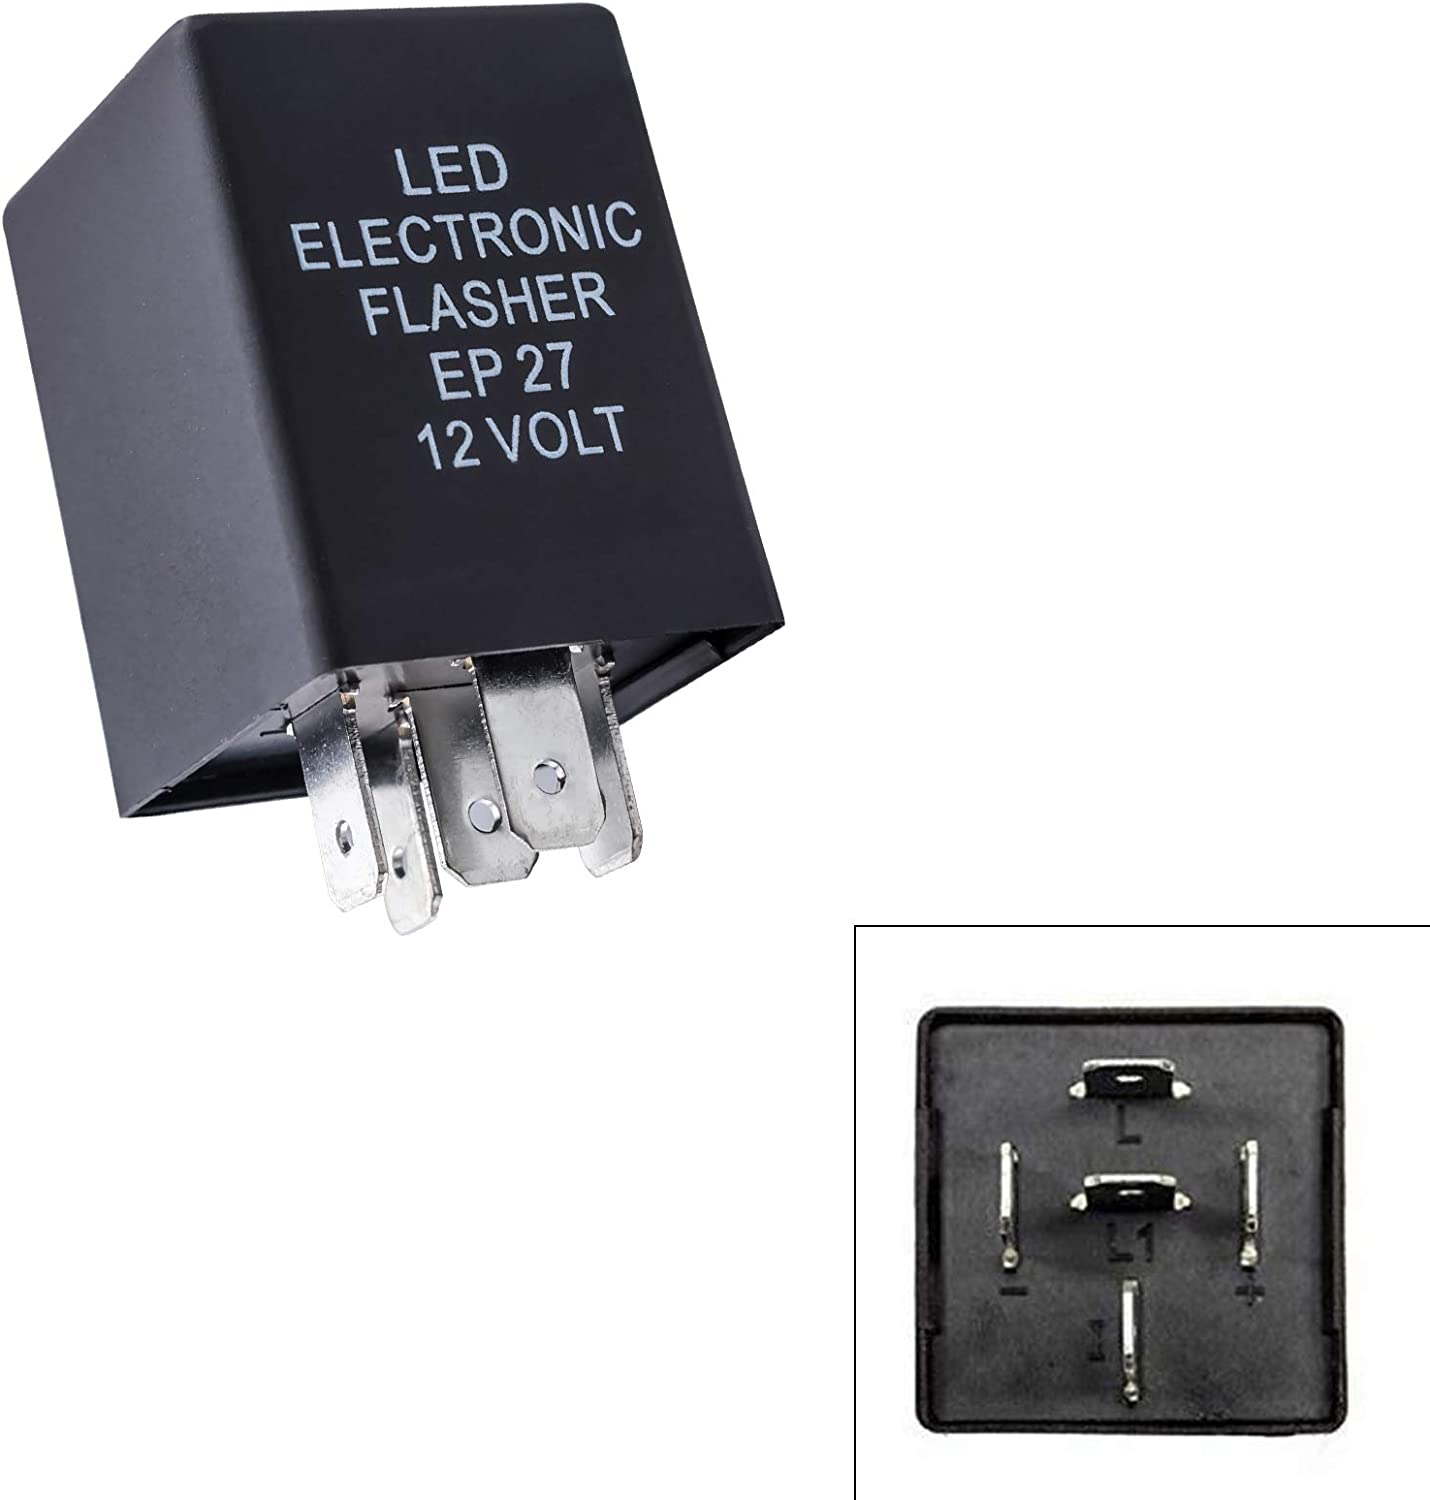 Xotic Tech 1pc 12V 5 ☆ popular 5-Pin SPDT L LED Relay Max 76% OFF Automotive Flasher for